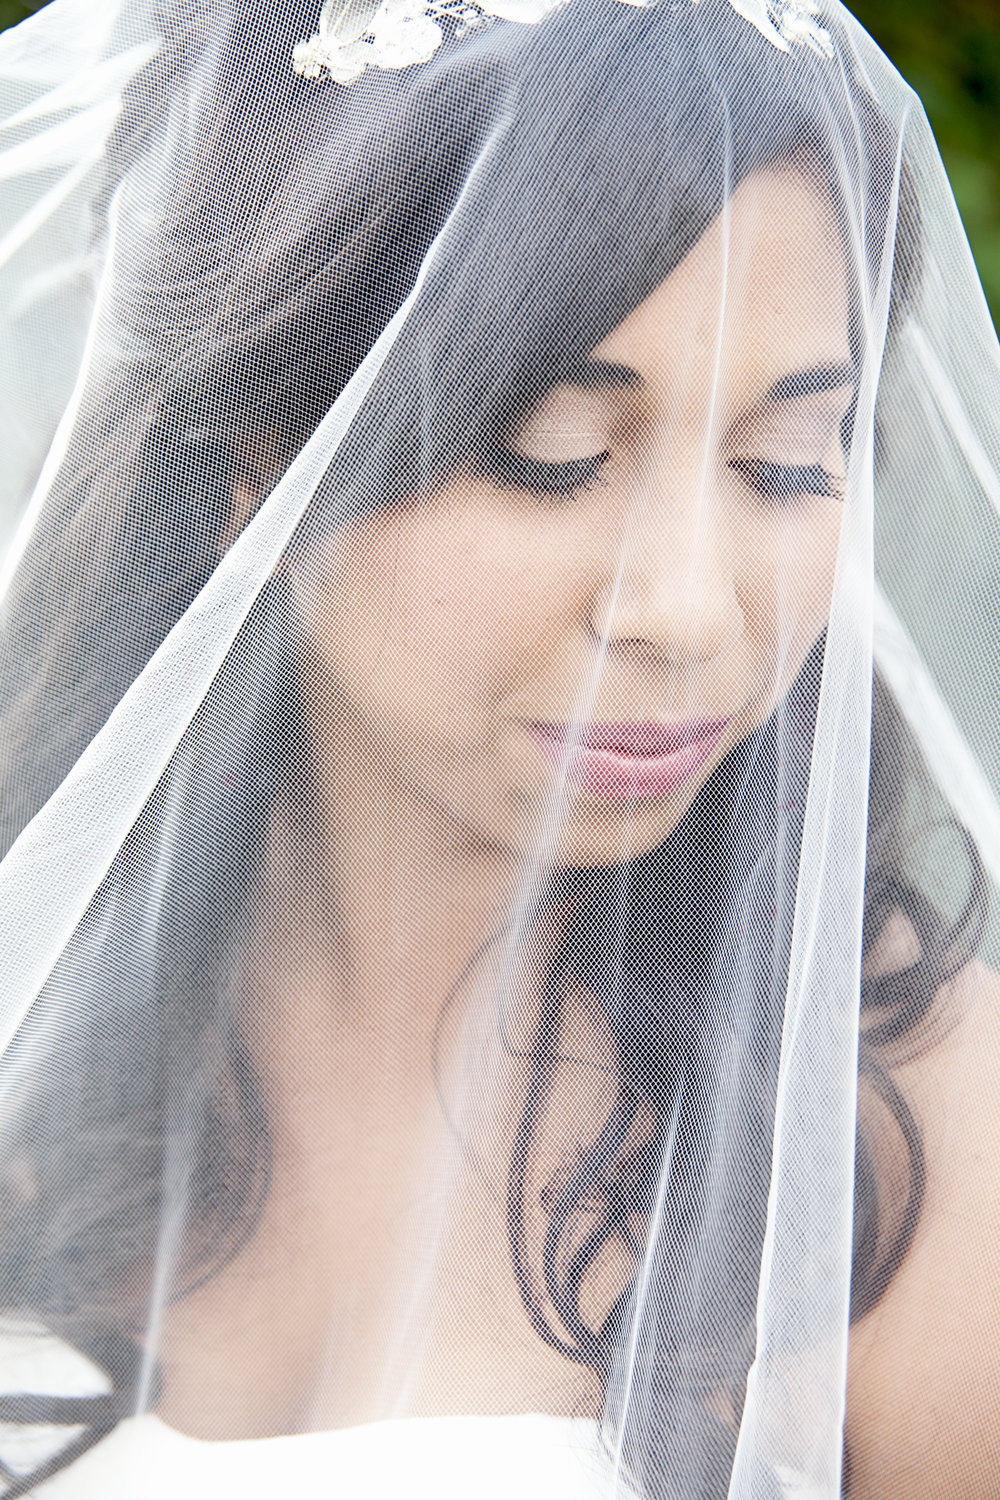 Bride wearing veil at Niagara wedding